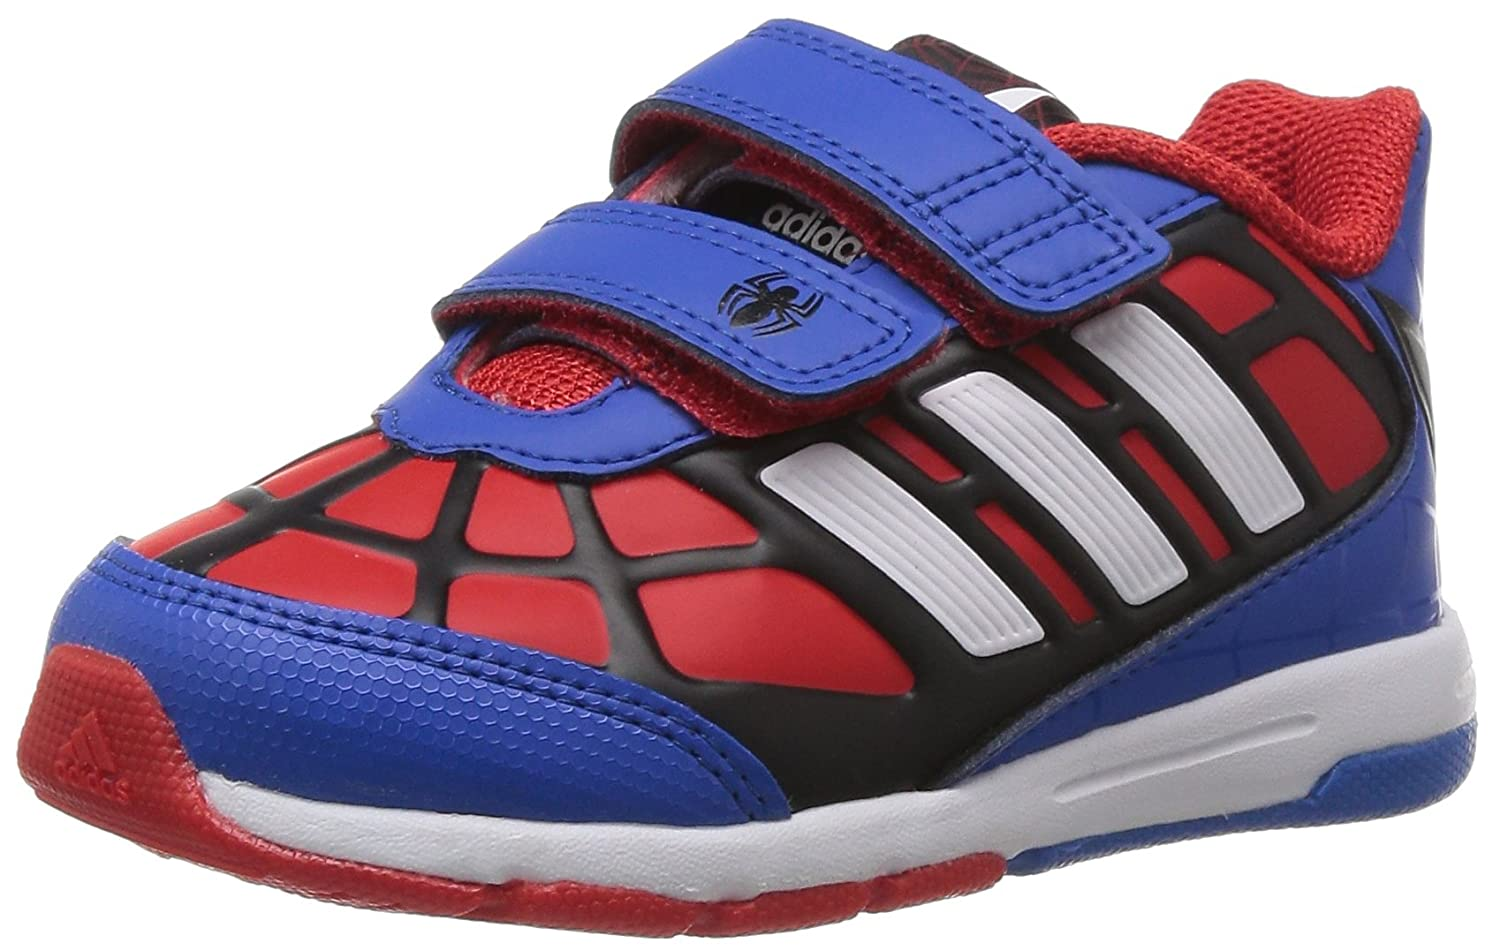 adidas Disney Spider-Man CF I, Baby Boy's Fashion Trainers Red Size: 8.5K:  Amazon.co.uk: Shoes & Bags